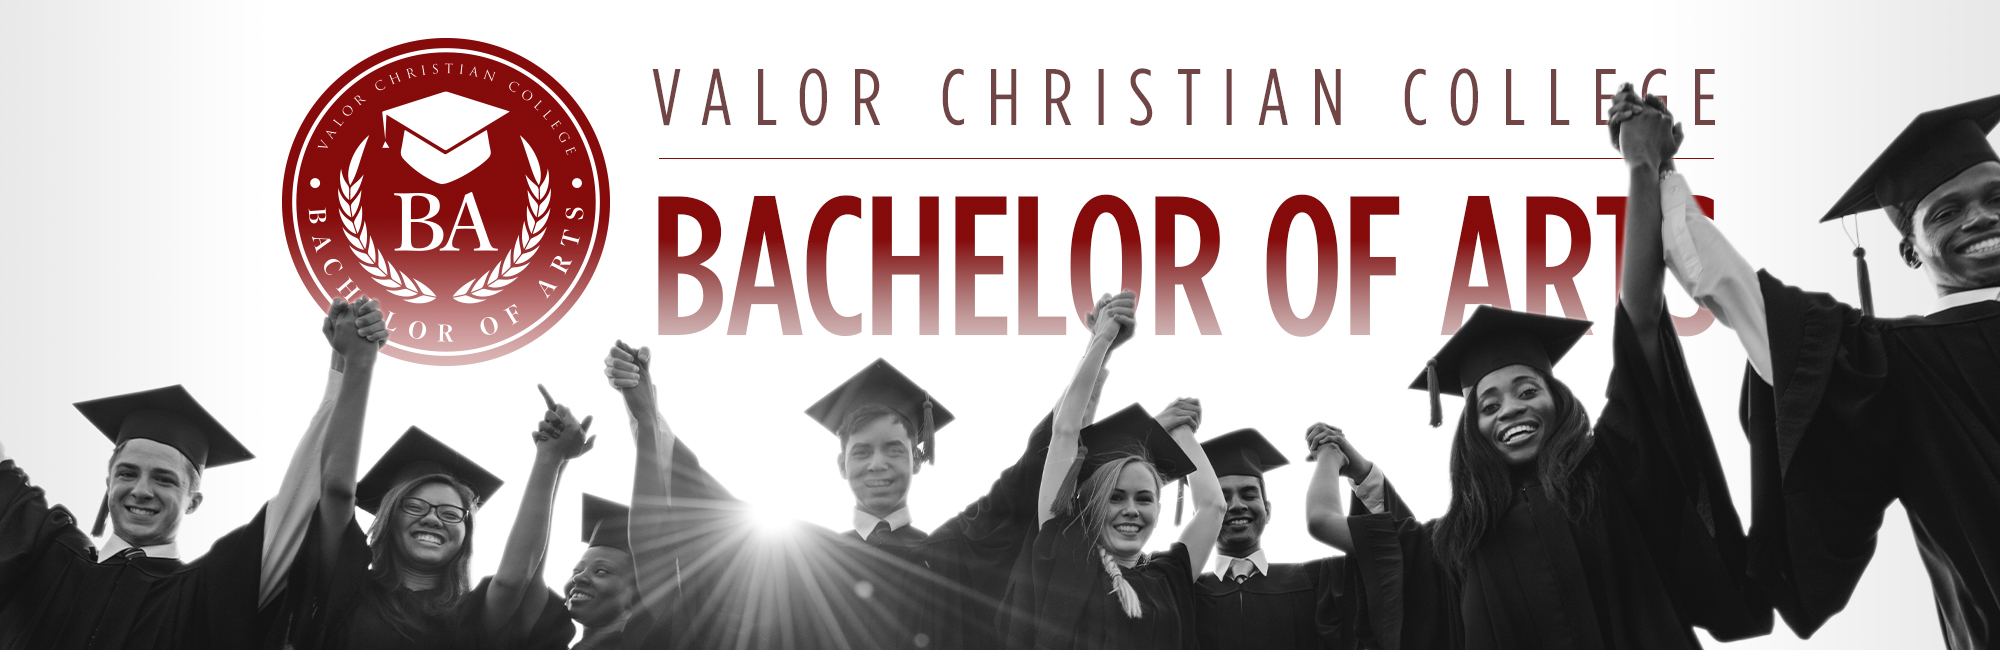 Bachlor of Arts in Christian Ministry